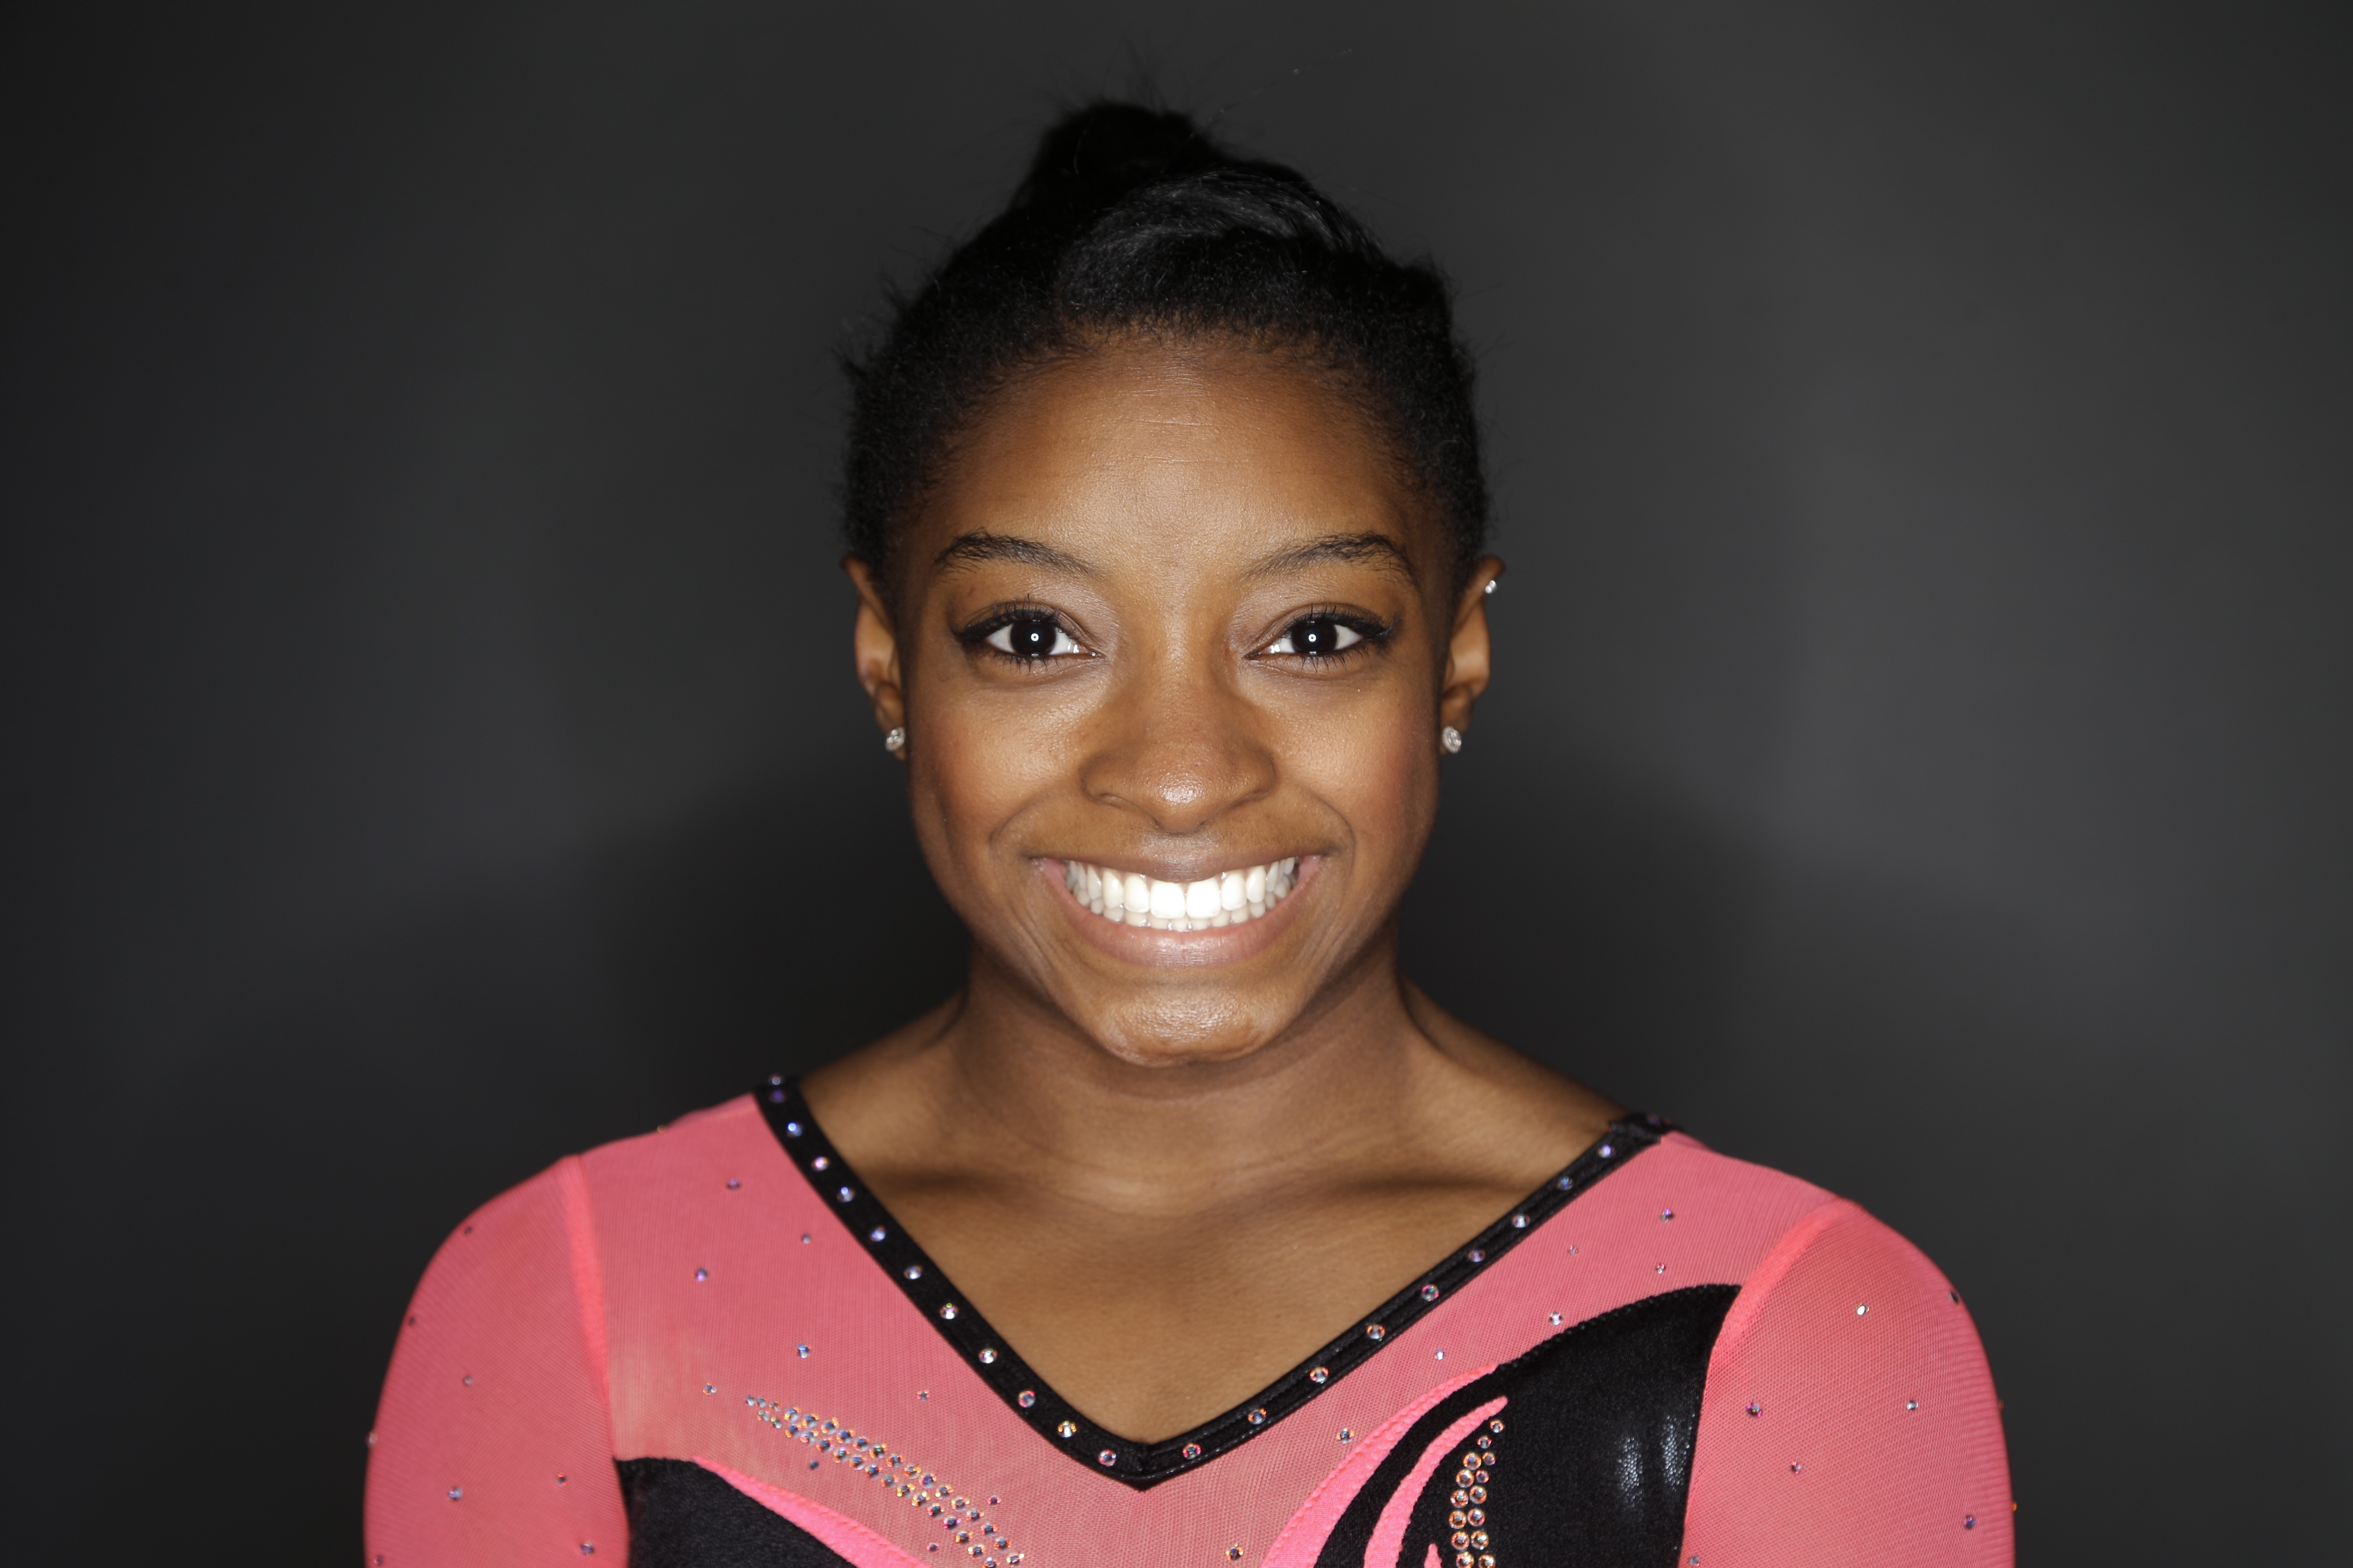 FILE - In this March 7, 2016, file photo, gymnast Simone Biles poses for photos at the 2016 Team USA Media Summit in Beverly Hills, Calif. The three-time defending world gymnastics champion begins her drive to the 2016 Olympics this weekend at the Pacific